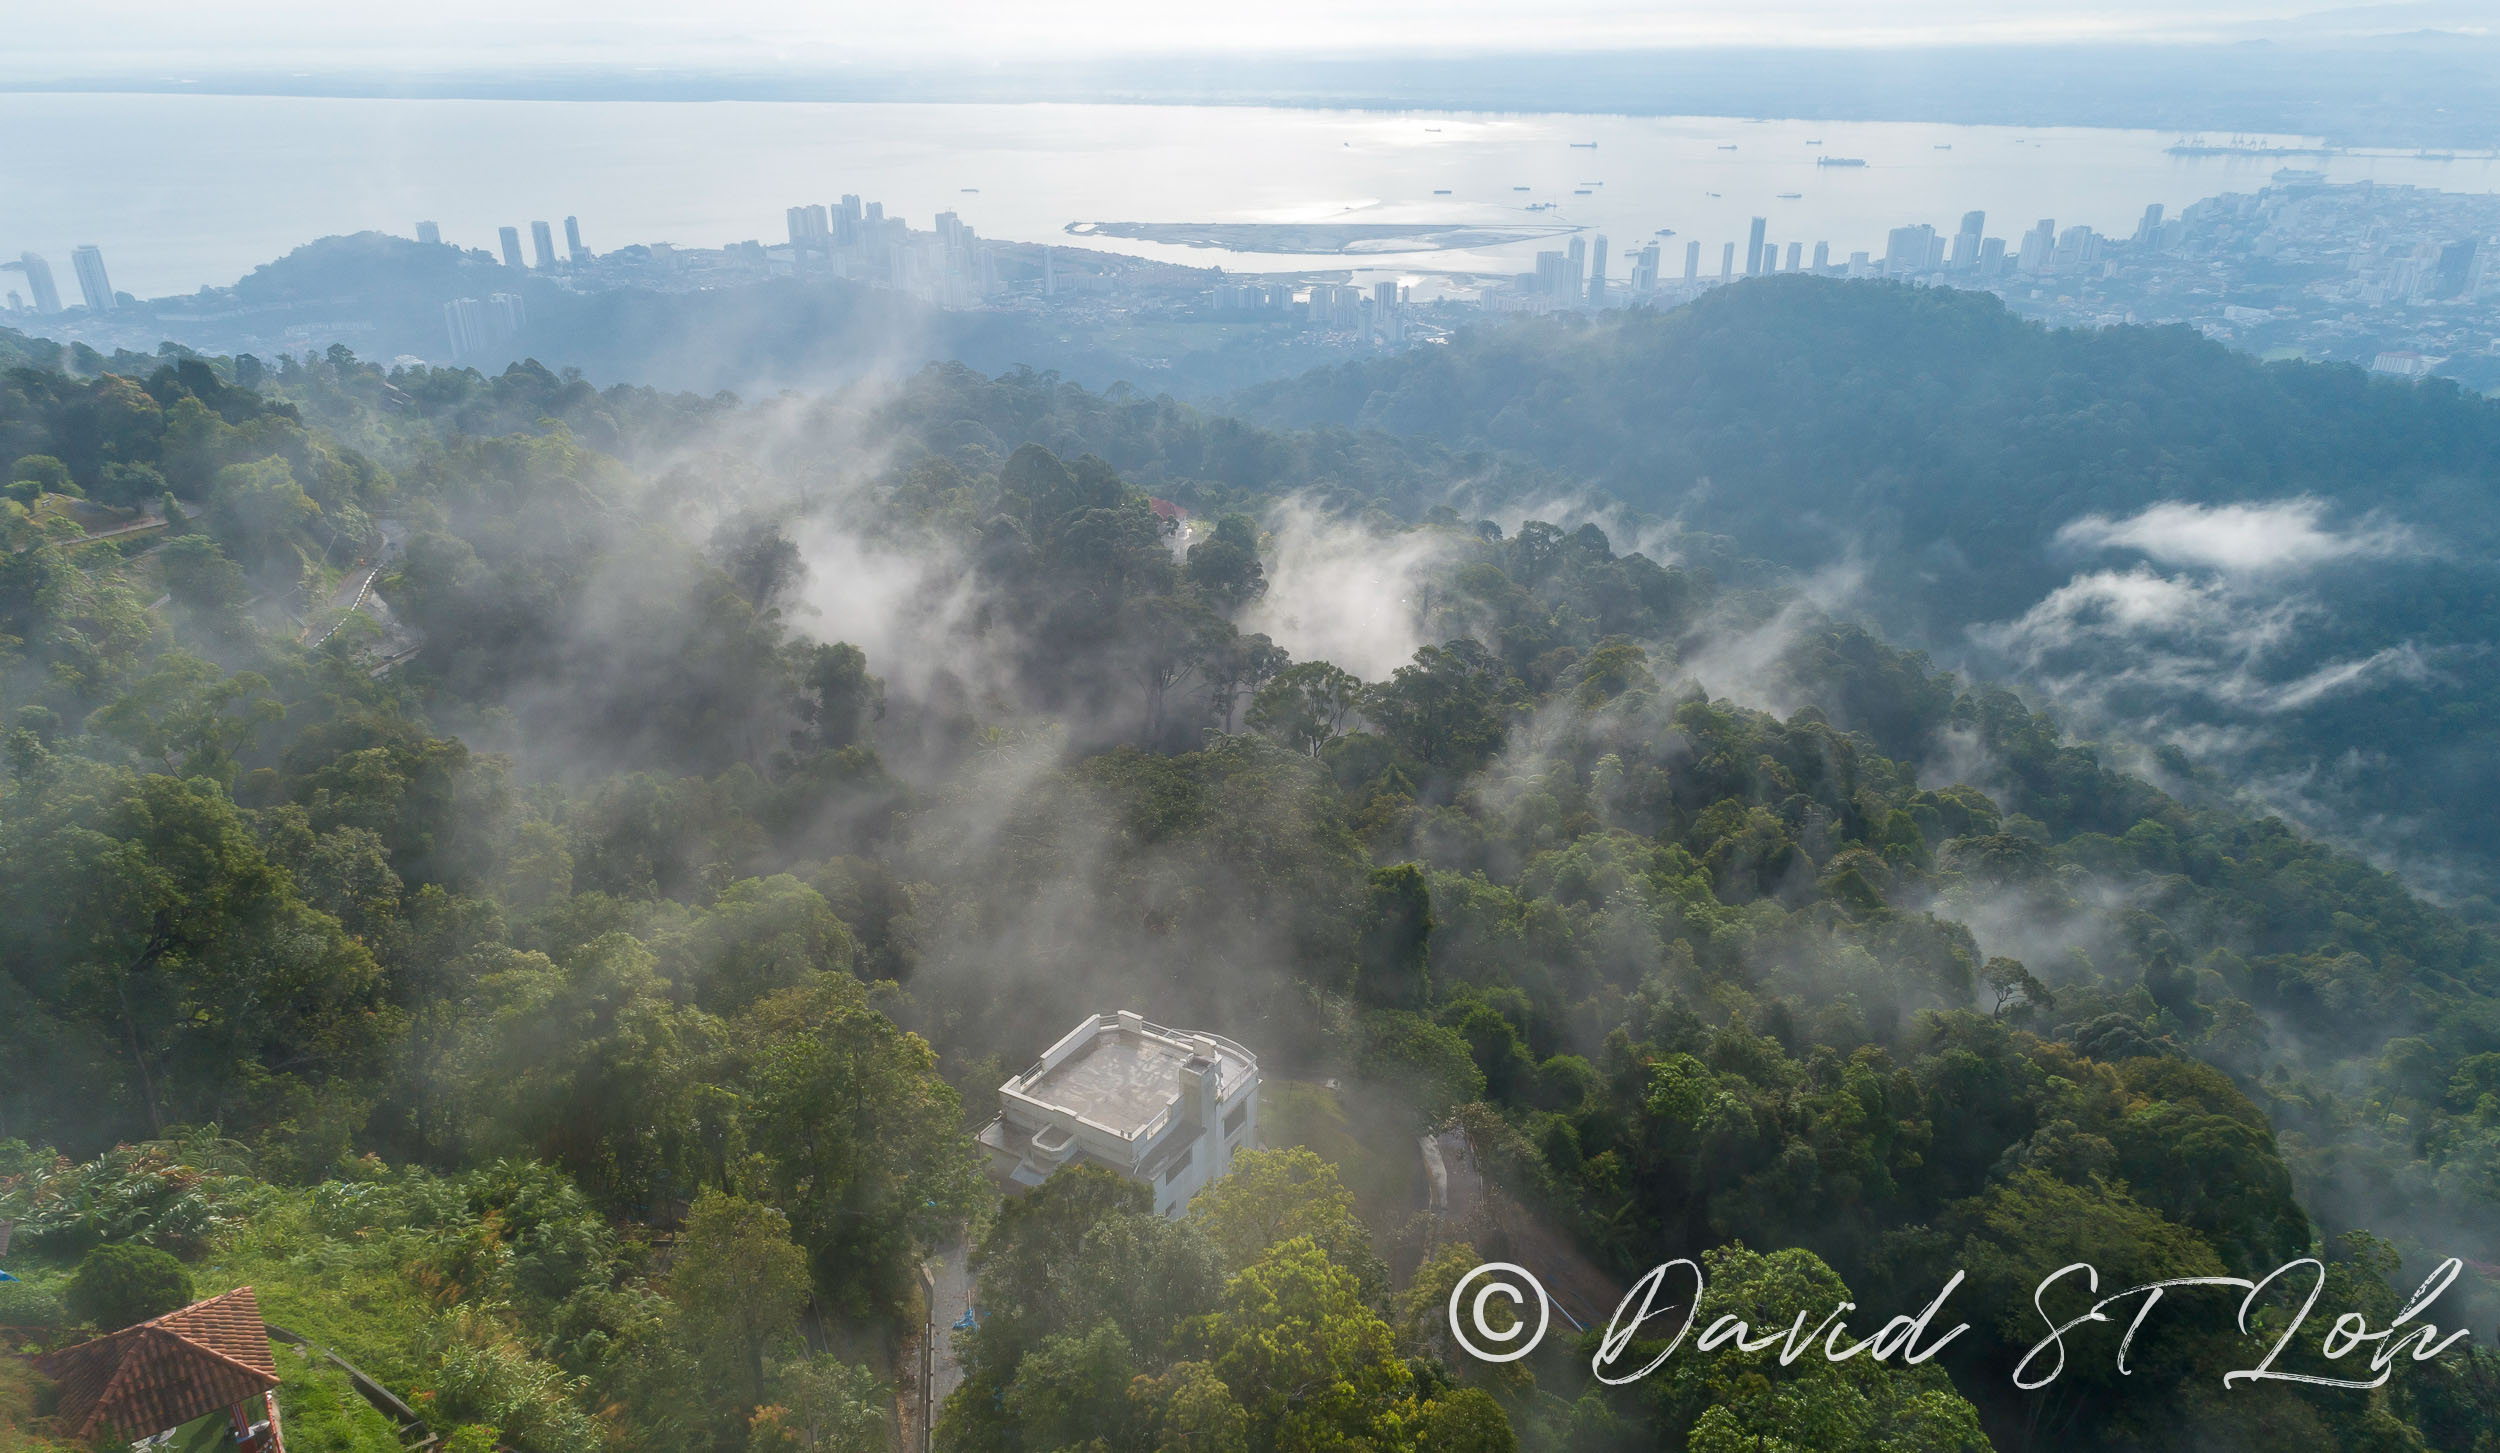 """In September, the Penang Hill Biosphere Reserve joined seven other new Asia-Pacific listings in UNESCO's Man and the Biosphere programme. The programme aims to improve livelihoods and protect ecosystems by acknowledging """"innovative approaches"""" to developing the economy in ways that are """"socially and culturally appropriate and environmentally sustainable""""."""